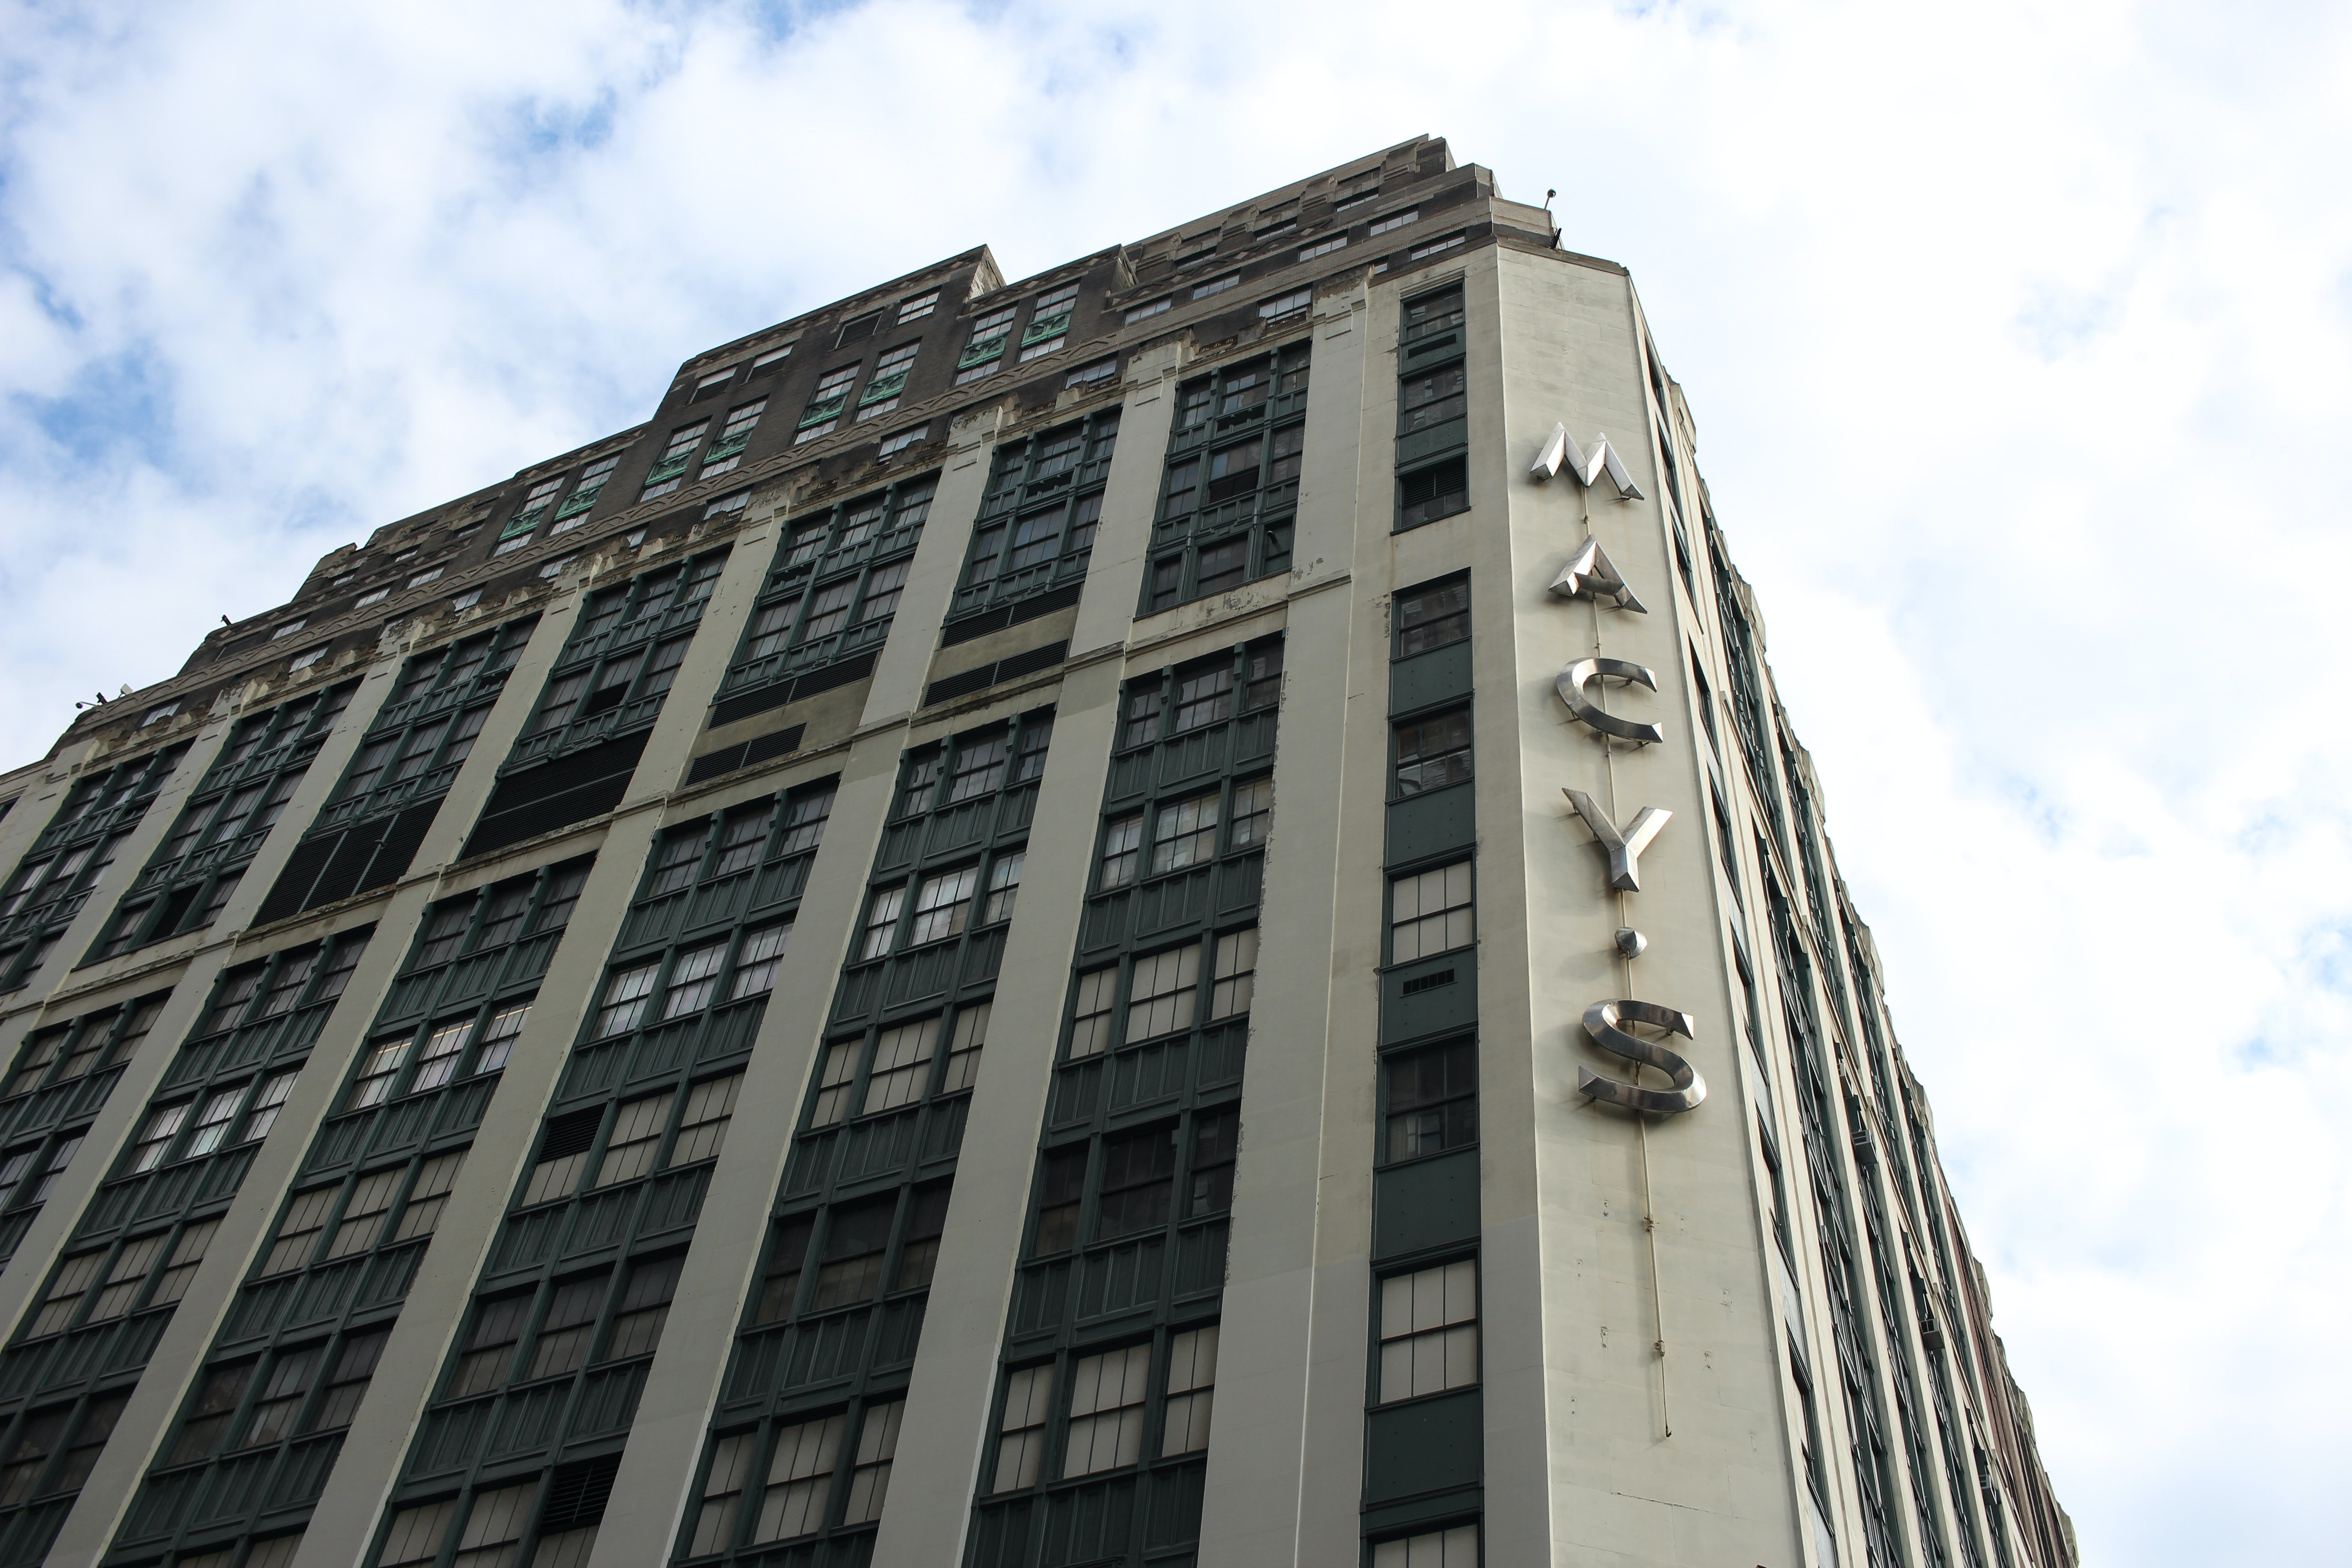 Macy's department store, Manhattan | Source: Shutterstock